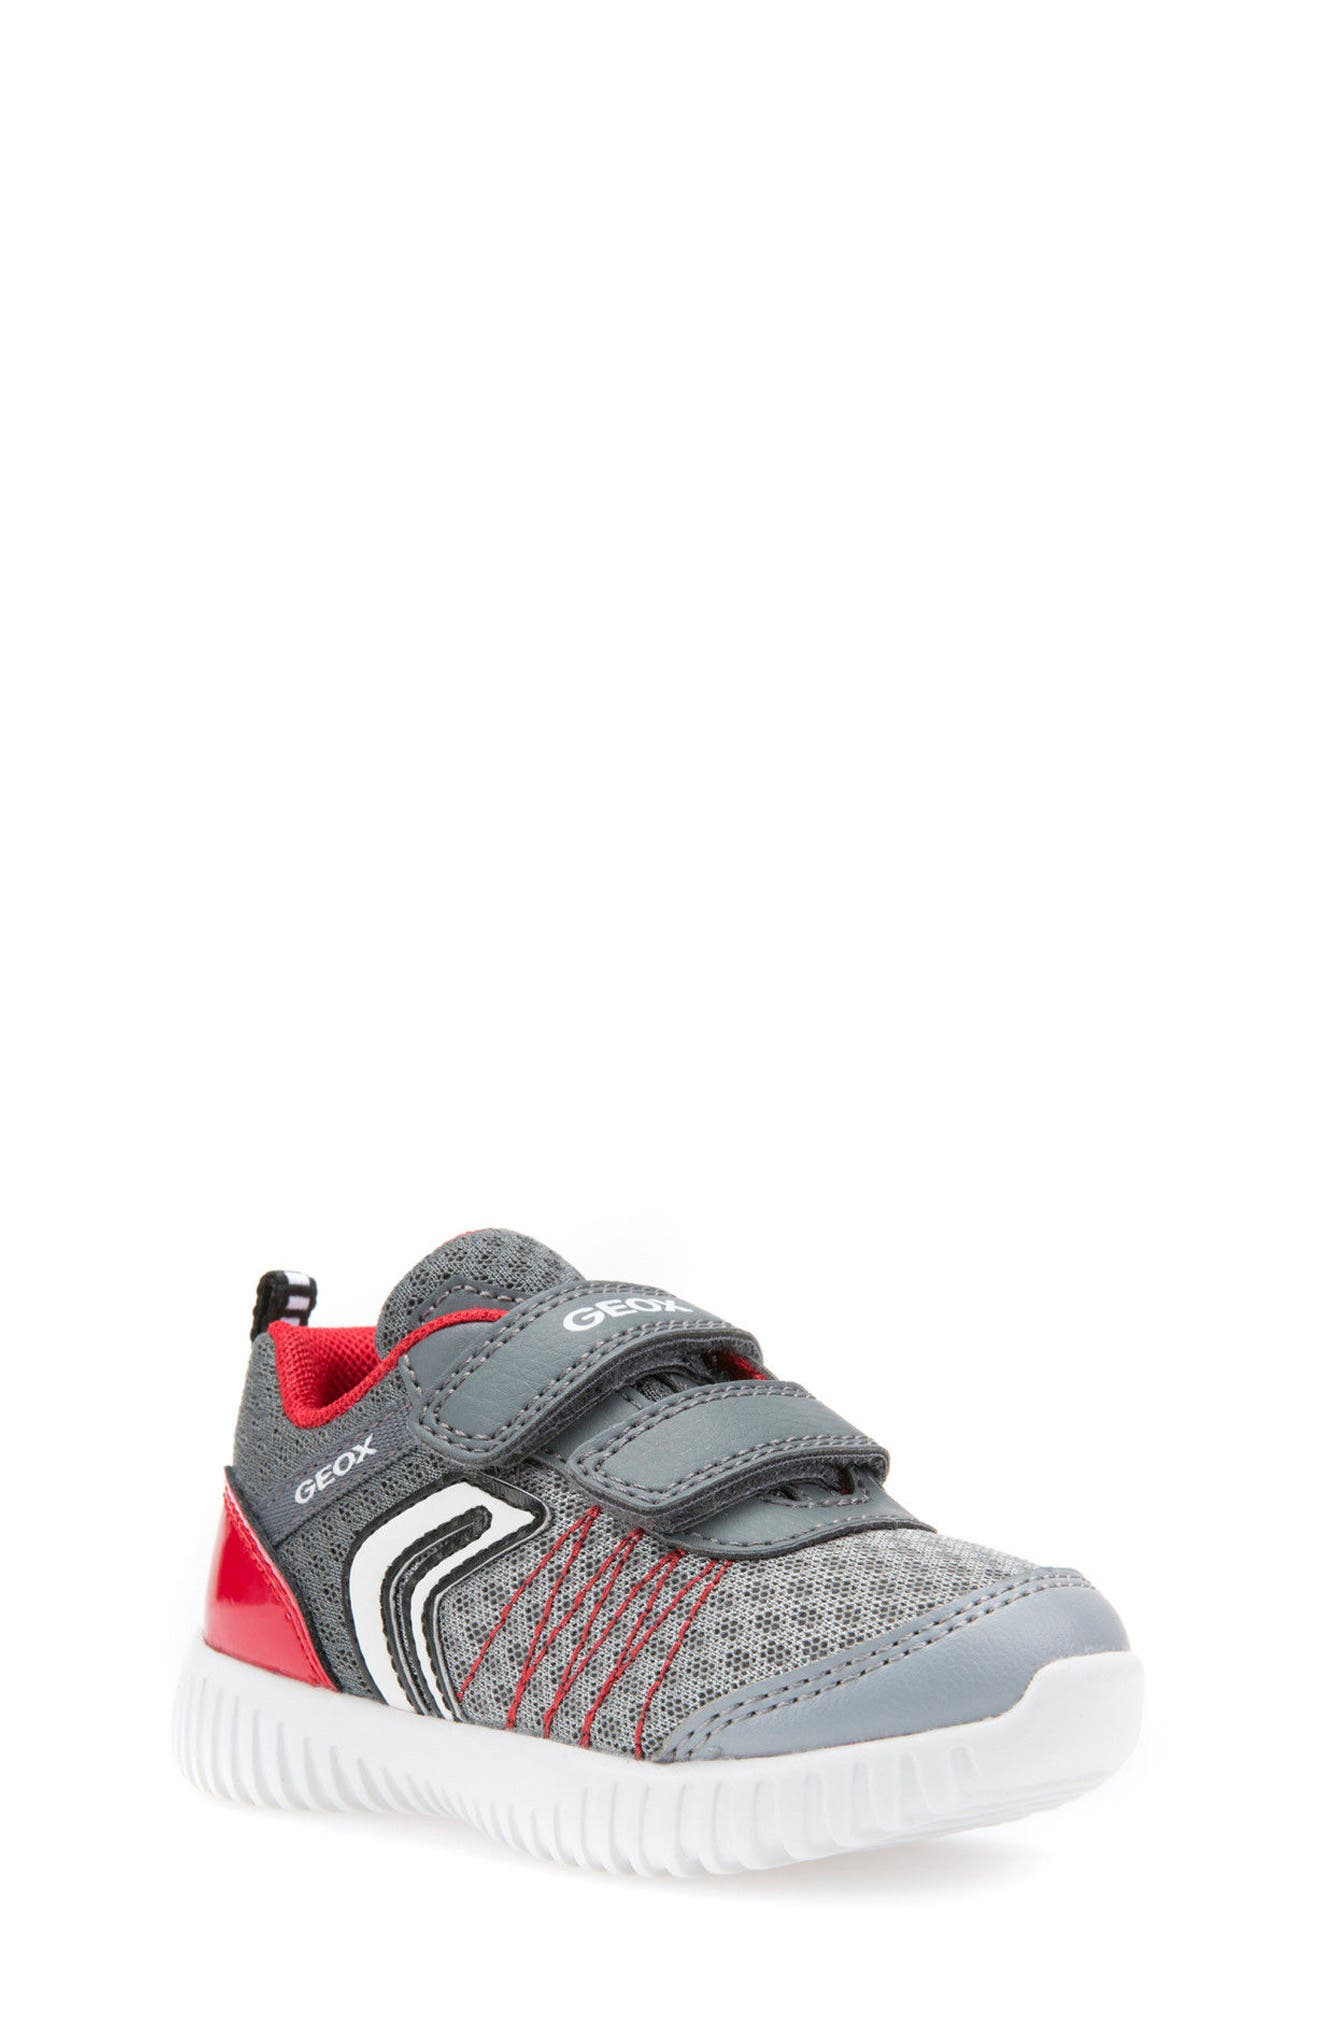 Waviness Sneaker,                         Main,                         color, Grey/ Red